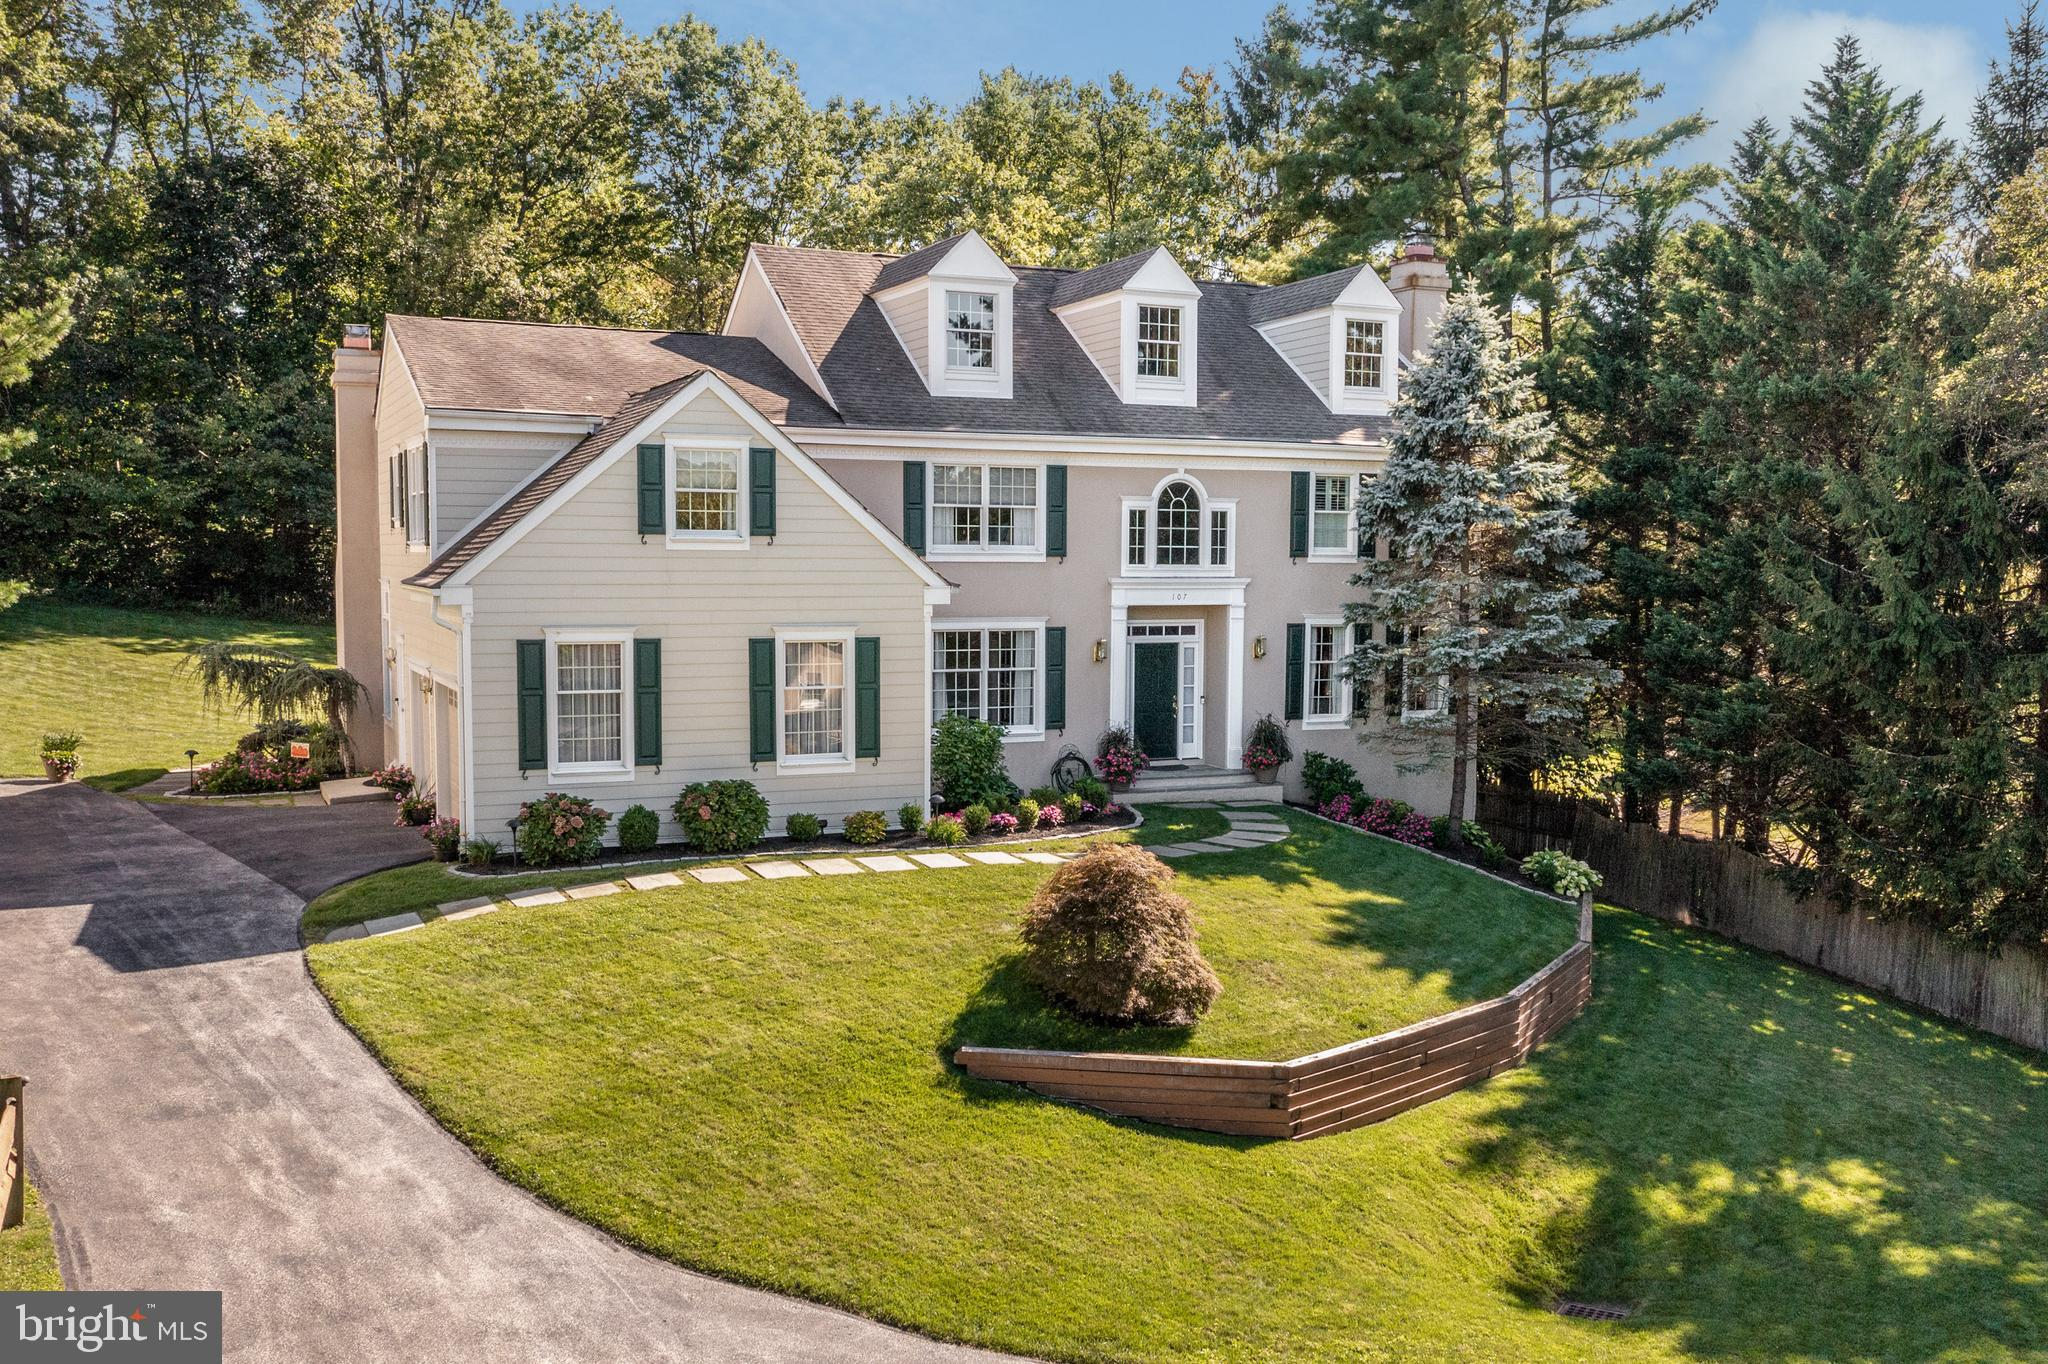 This classic, walk-to-Wayne colonial marries an elegant and spacious interior with a beautiful, calming exterior. With four bedrooms and three full bathrooms, as well as a finished lower level and attached two-car garage, you have the room you need in a location that is also ideal: within the sought-after Tredyffrin-Easttown School District and proximity to Main Line towns and all they offer, along Route 30. The attractiveness of the home begins with a pretty walkway, flanked by mature plantings and leading to a gracious front door and entryway. The elegant foyer, topped with distinctive windows and with two closets, leads to the living and dining rooms on the right. The living room, with a white-mantel fireplace, has generous windows, high ceilings, and distinctive crown molding. The dining room features hardwood floors and wainscoting. To the left of the foyer is a home office next to a full bath with stall shower - convertible to a first-floor bedroom with bath if desired. The kitchen is an ideal destination for both preparing everyday meals and hosting. It brims with attractive features, including granite countertops, a center island with bar seating, lovely white cabinets, some with glass doors, and tumbled marble backsplash. An elegant bar area with separate sink adds to the prettiness of the room, while professional, stainless steel appliances, including a gas Wolf oven range, make cooking easy. The adjacent breakfast/morning room is sunny and bright, with sliders that open to the spacious deck and backyard. The ongoing spaciousness flows from the kitchen, leading to a carpeted family room that has a white-mantel fireplace and two-story, vaulted ceiling with fan and two skylights. Both the pantry and laundry area are next to the kitchen, with convenient garage access as well. Ascend to the second level - The main bedroom, carpeted and with two walk-in closets and a separate sitting area, features an updated bathroom with double vanity, a soaking tub, and walk